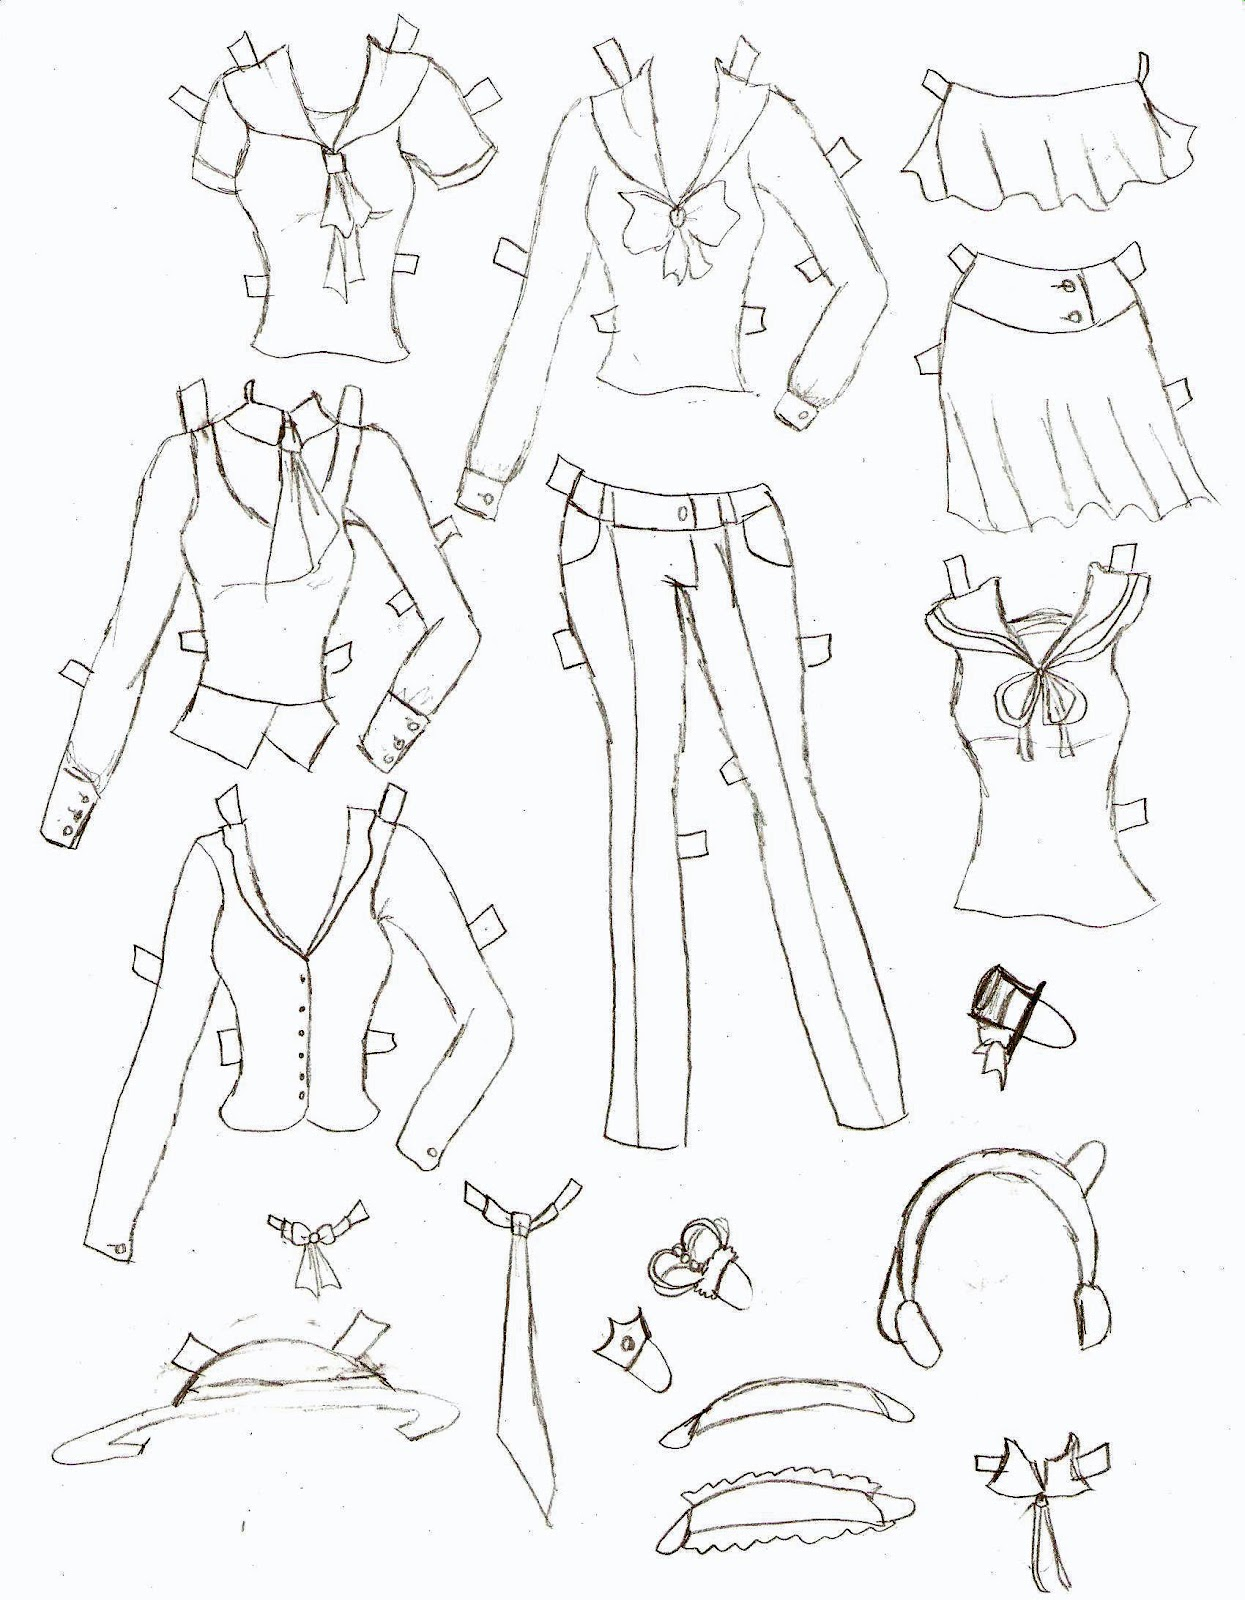 2012 03 01 archive on dress design cut to skirts